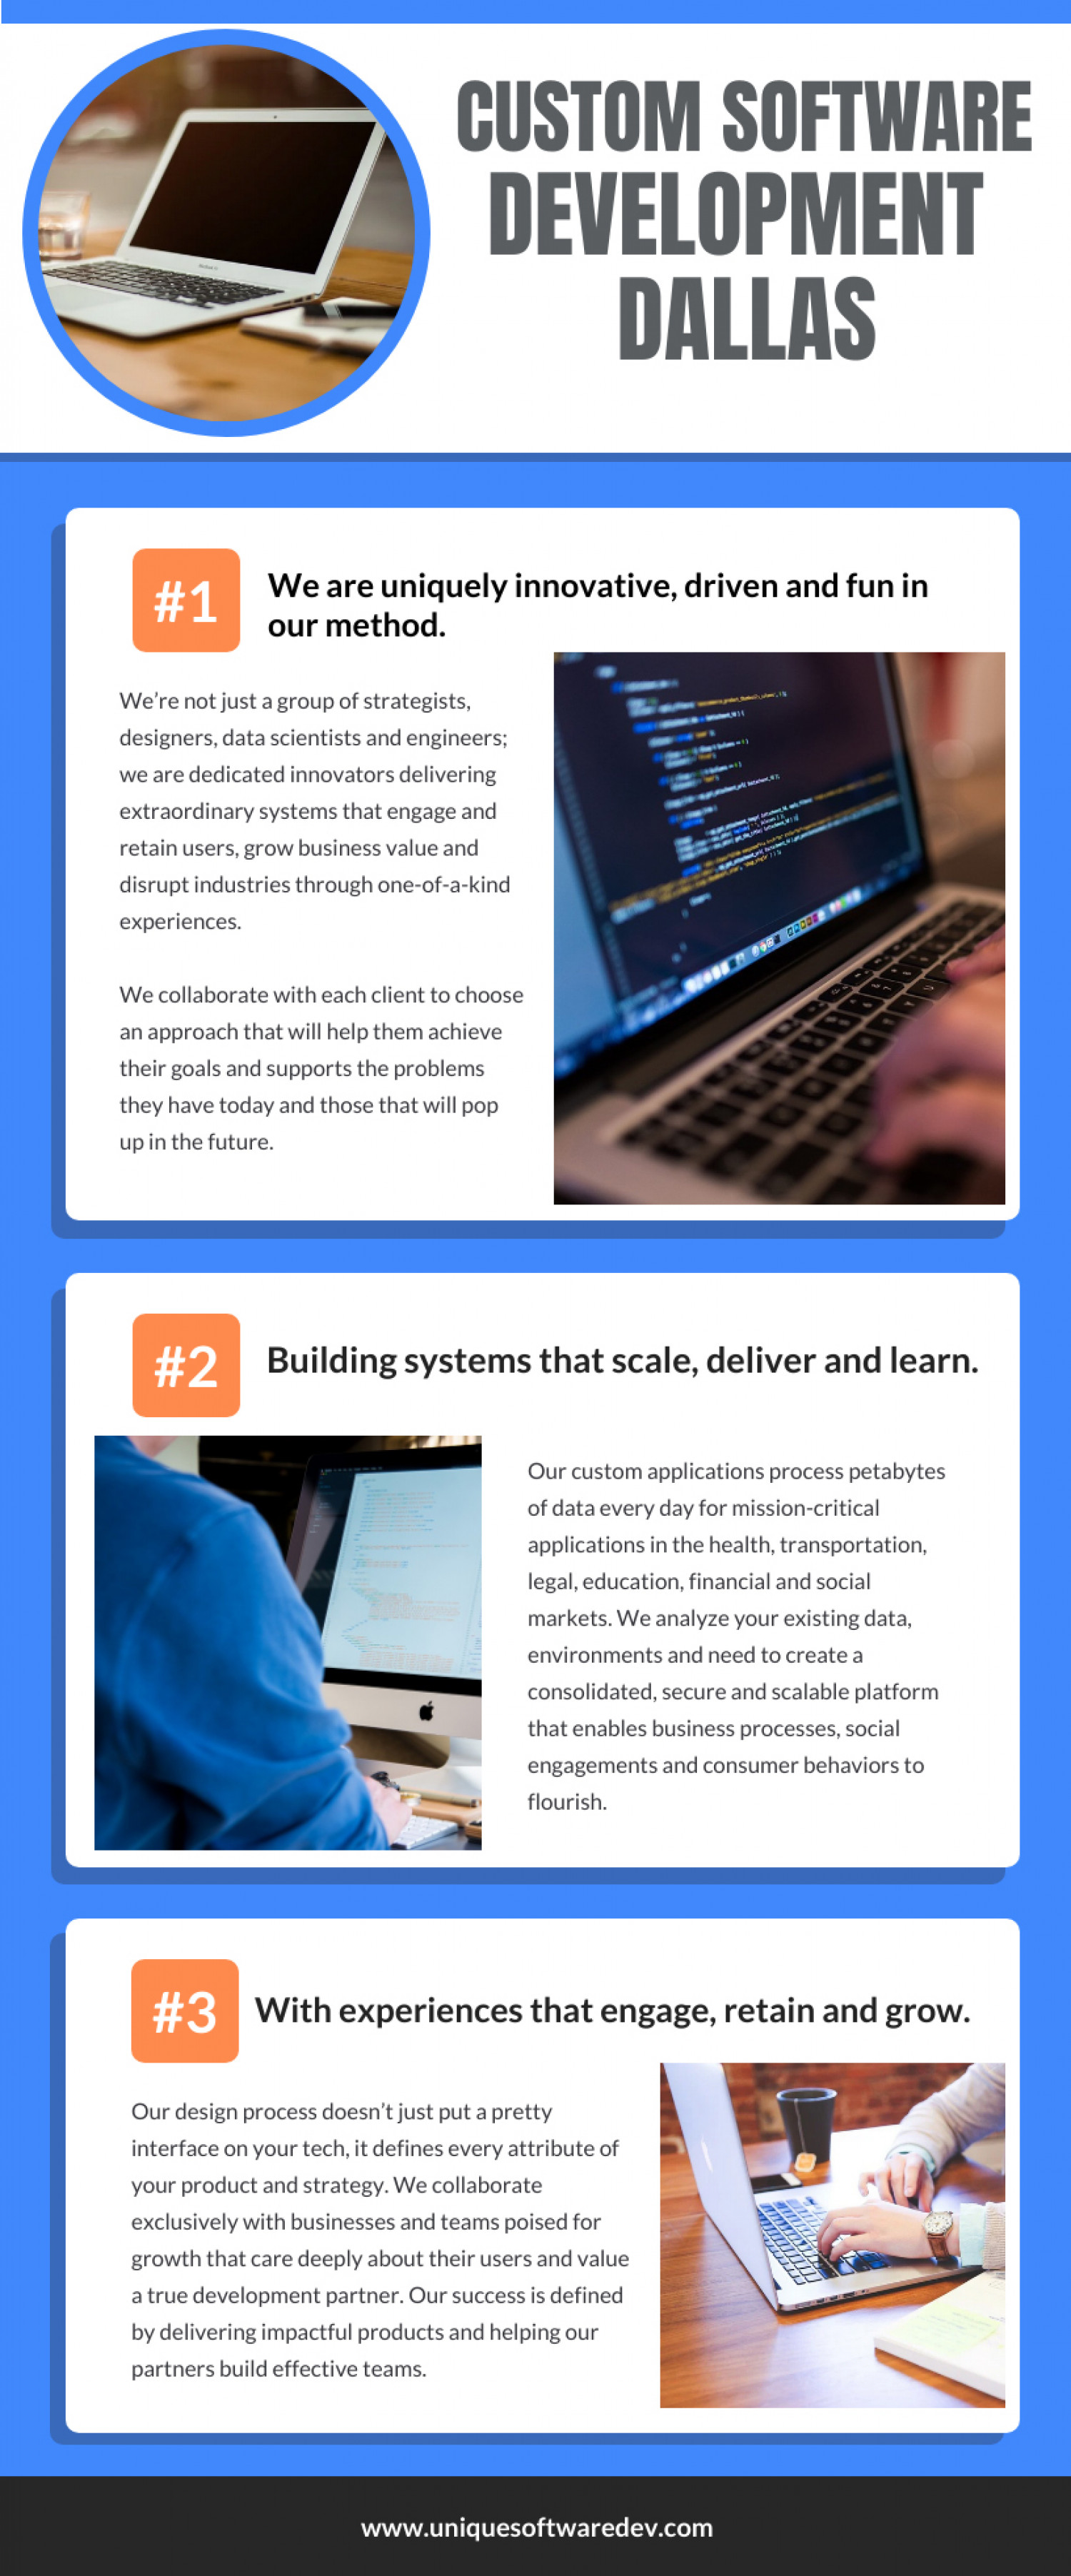 Custom Software Development Dallas Infographic